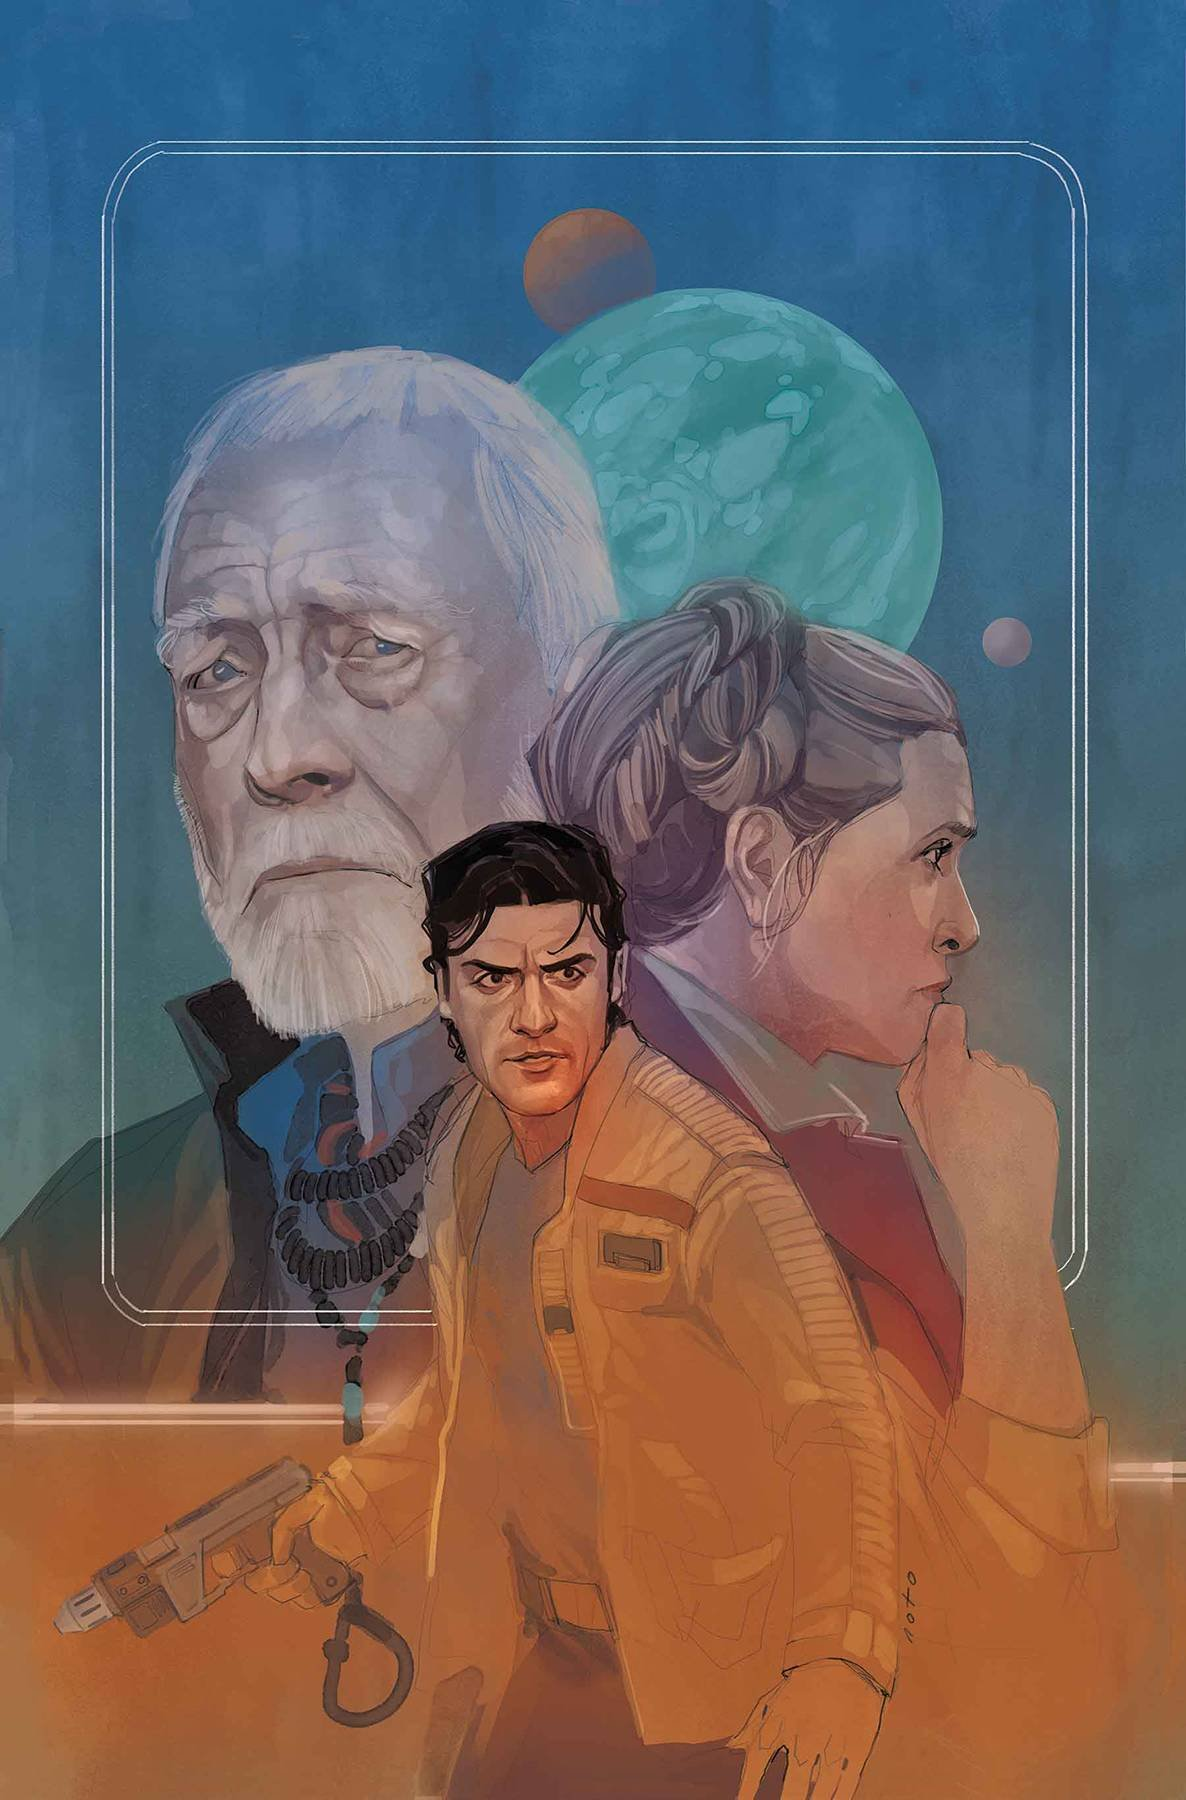 Download STAR WARS POE DAMERON #20 COVER A Release date 10/18/17 ebook